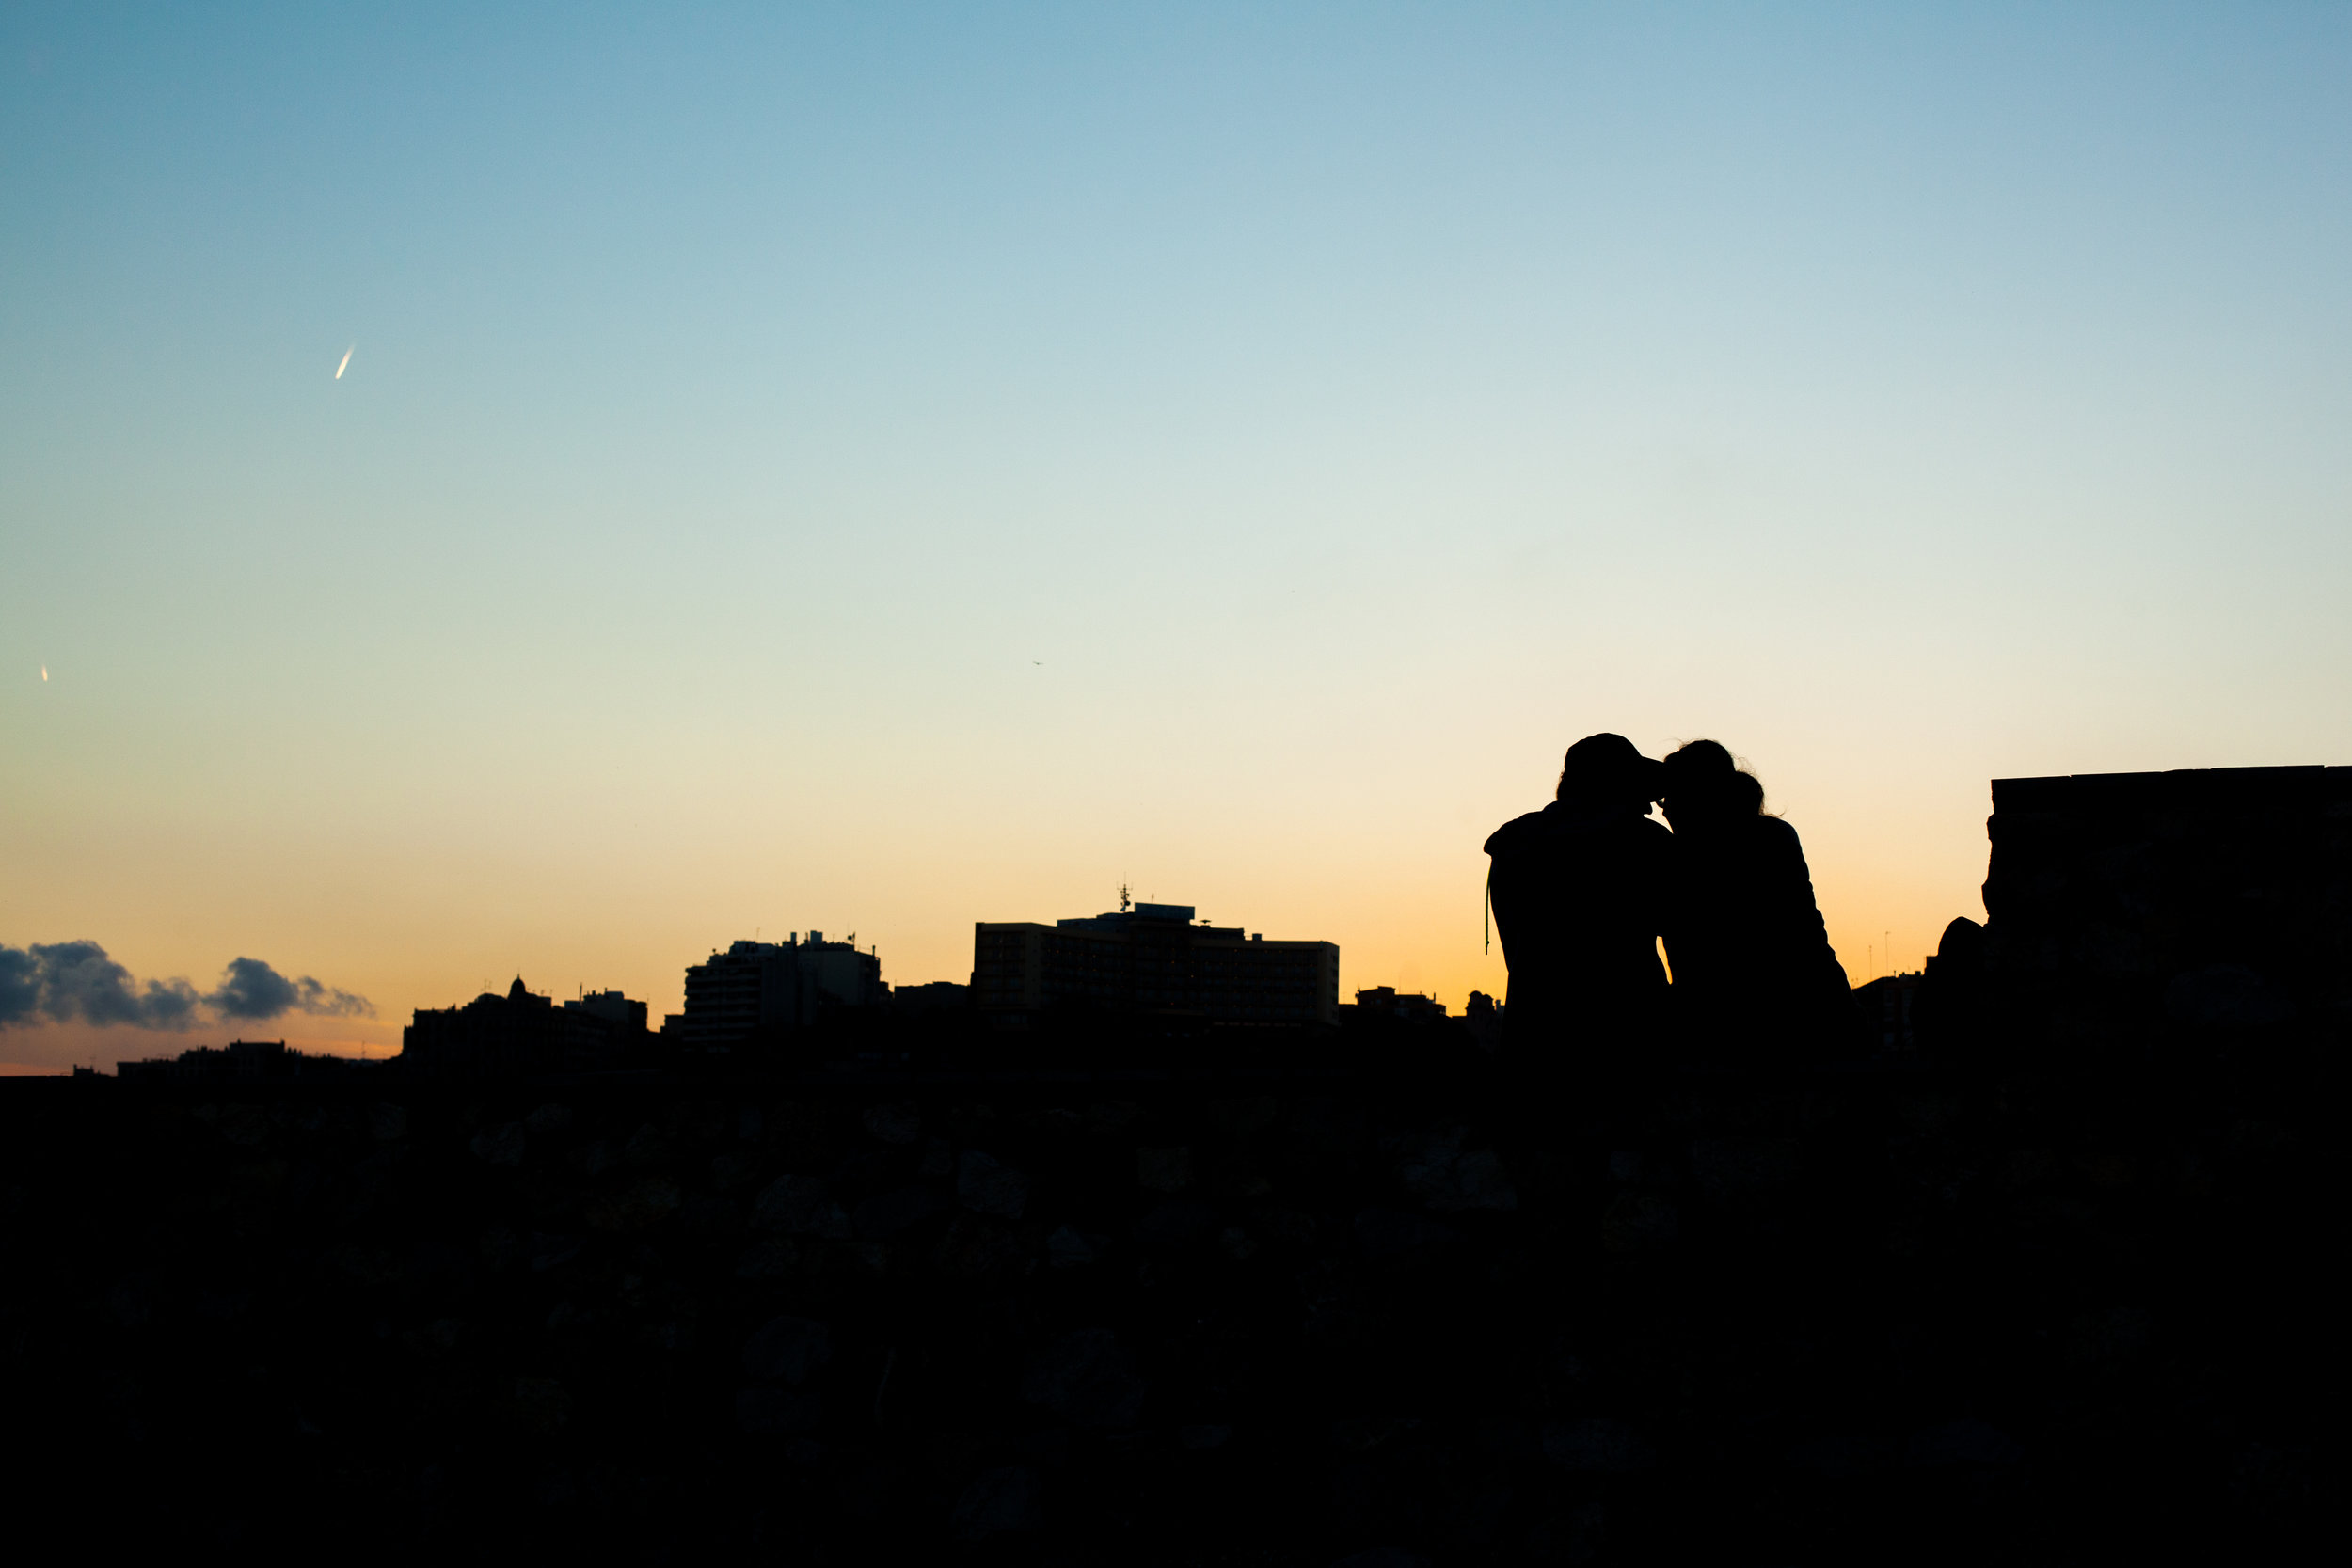 A romantic silhouette sunset shot in Tarragona, Catalonia.